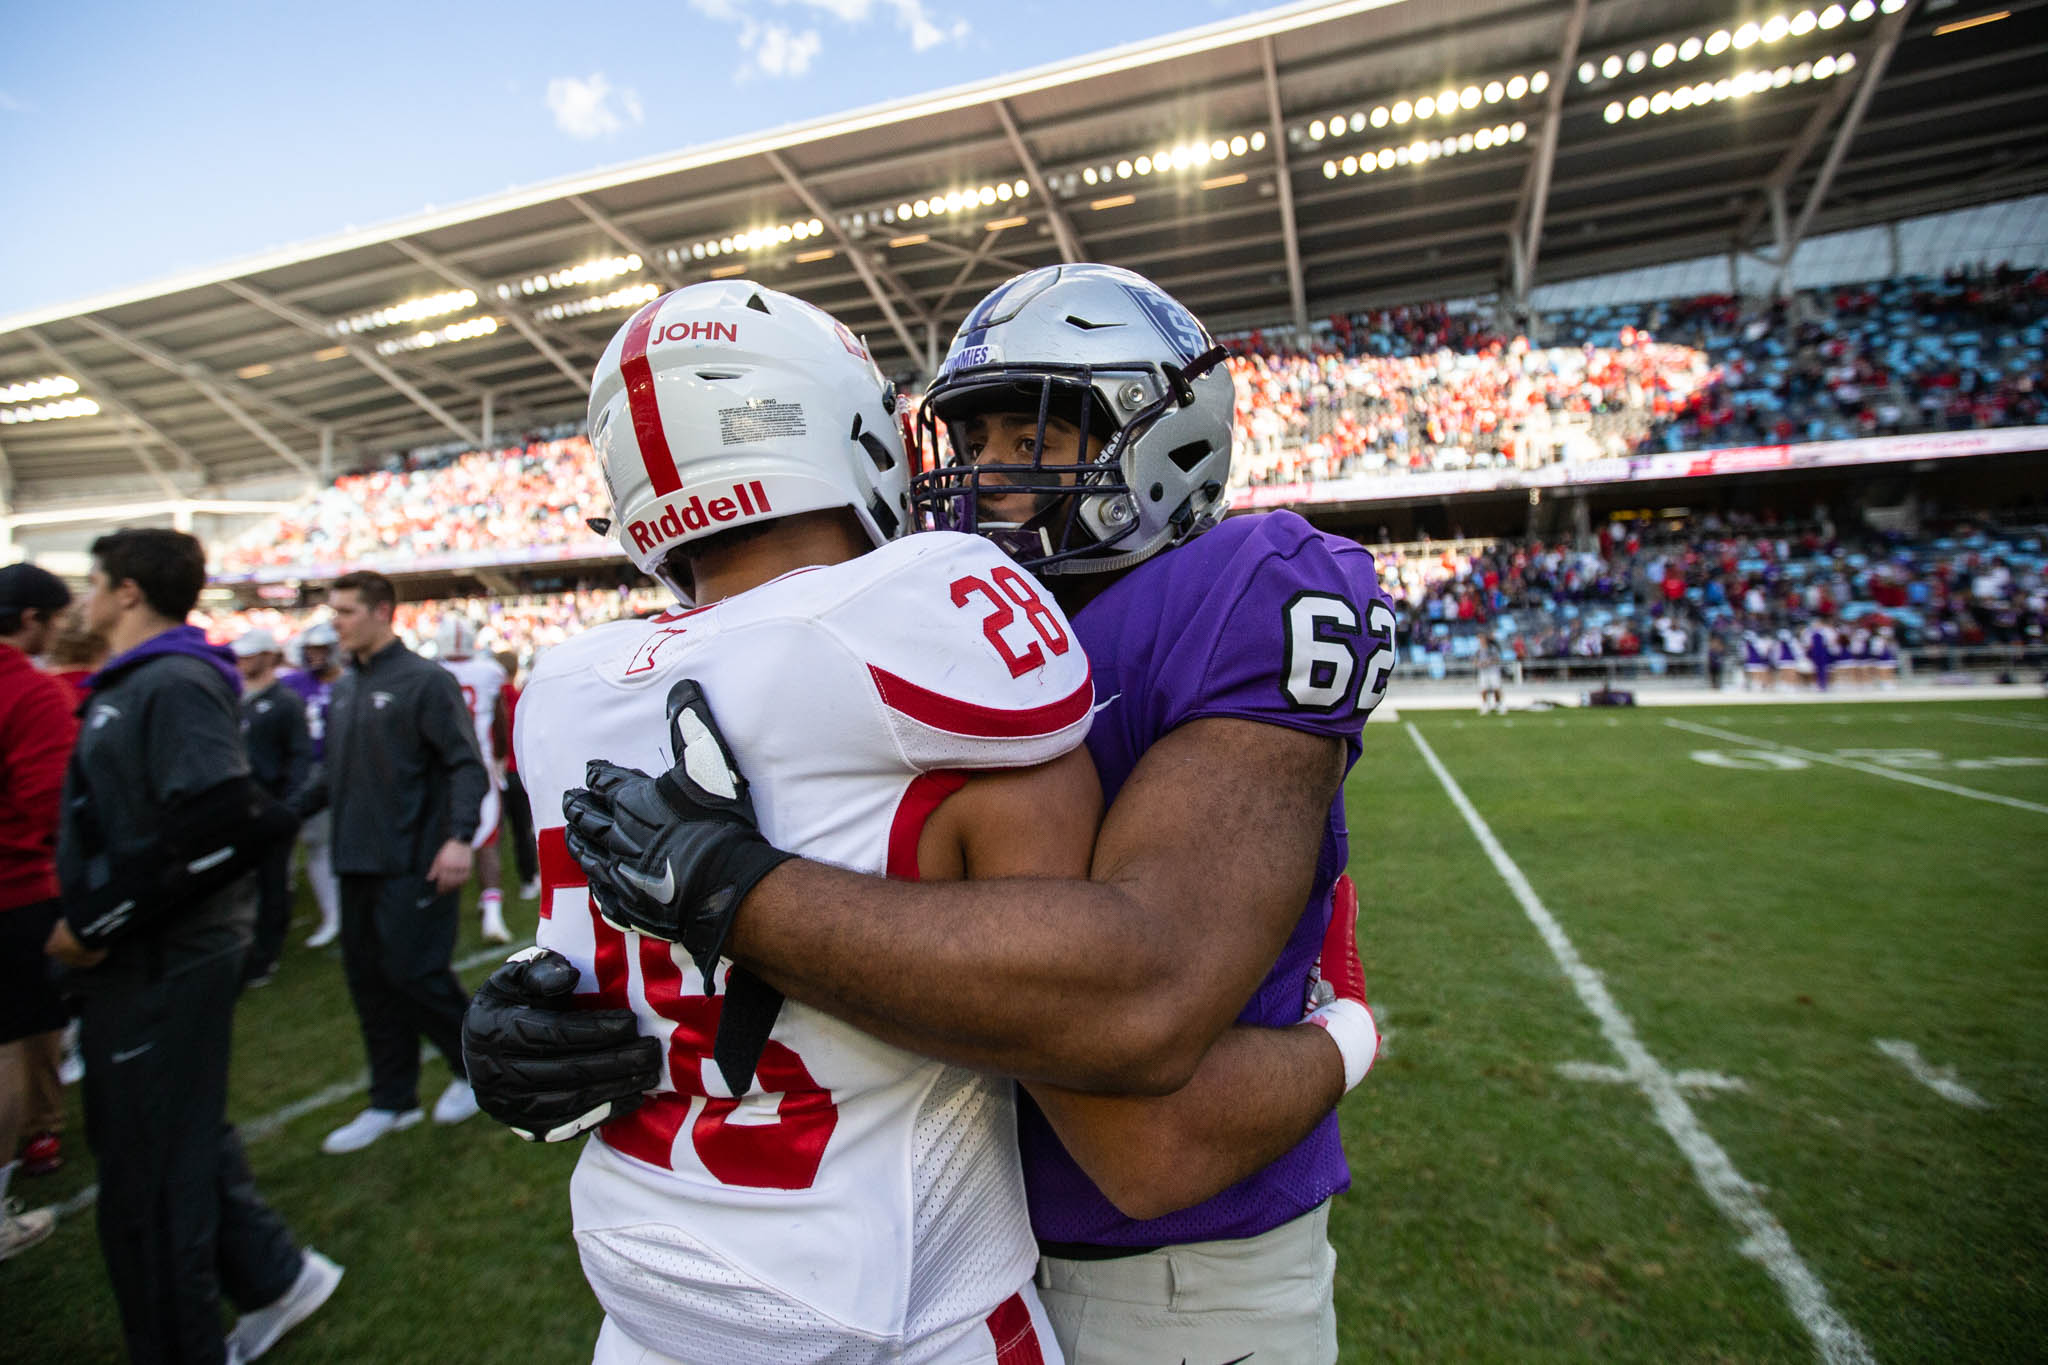 The camaraderie of the game applied to players as well as fans at the St. Thomas-St. John's football game.